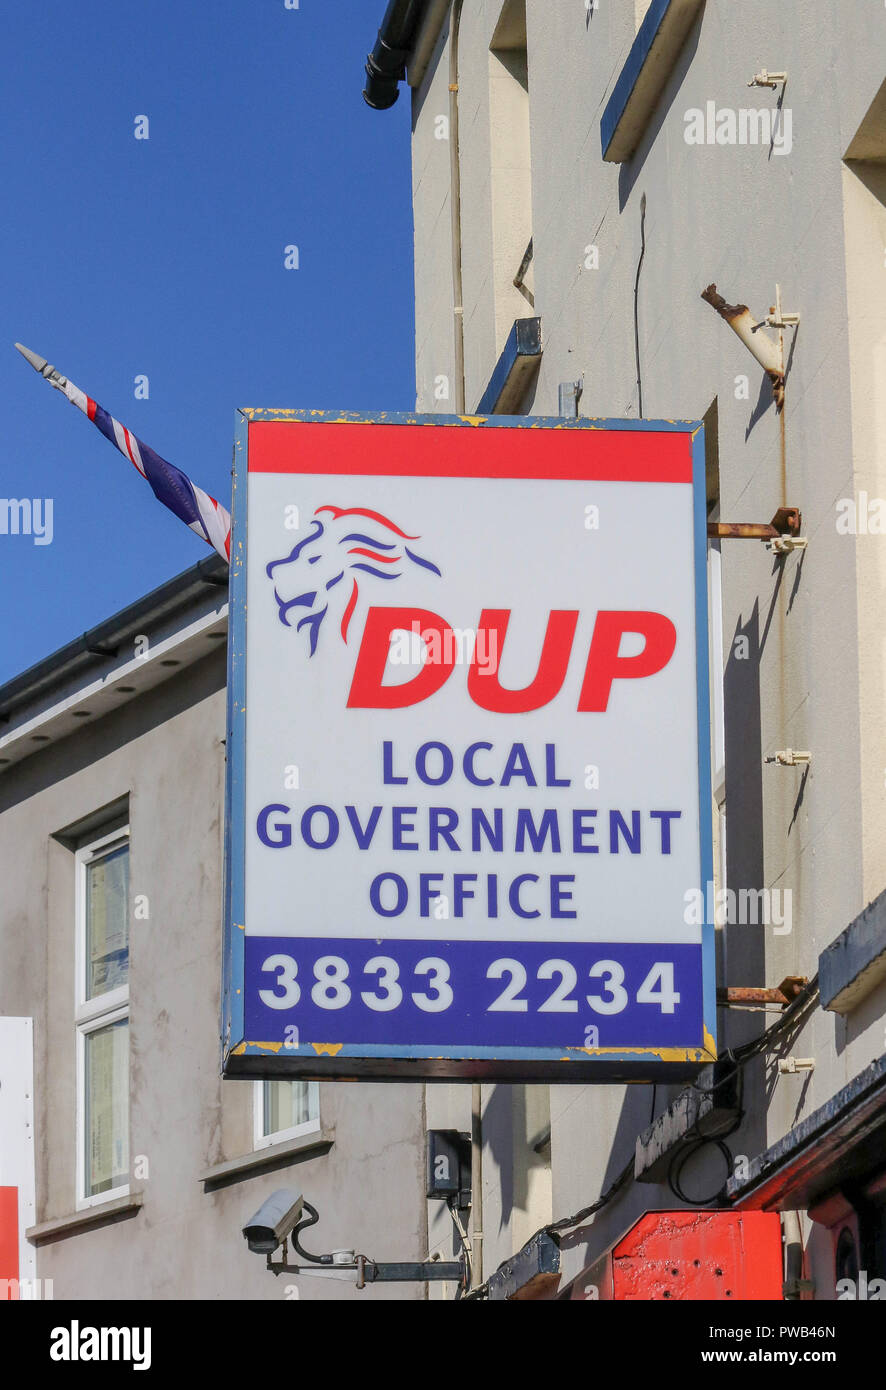 DUP Northern Ireland - a sign outside the Democratic Unionist Party office in Portadown, County Armagh, Northern Ireland. - Stock Image